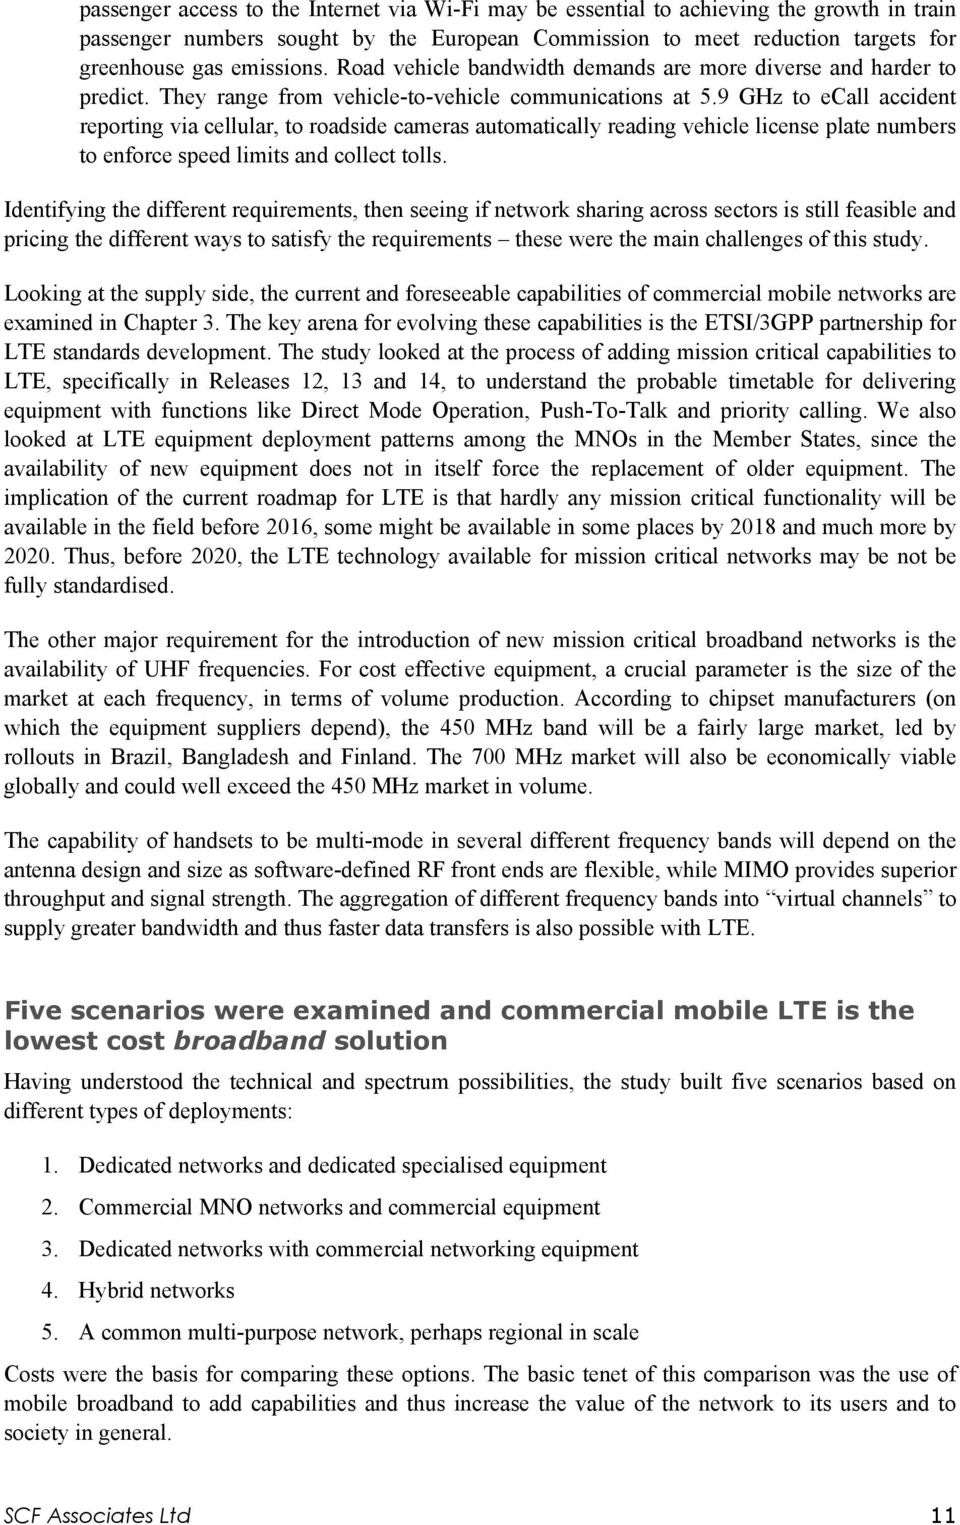 is commercial cellular suitable for mission critical broadband pdf